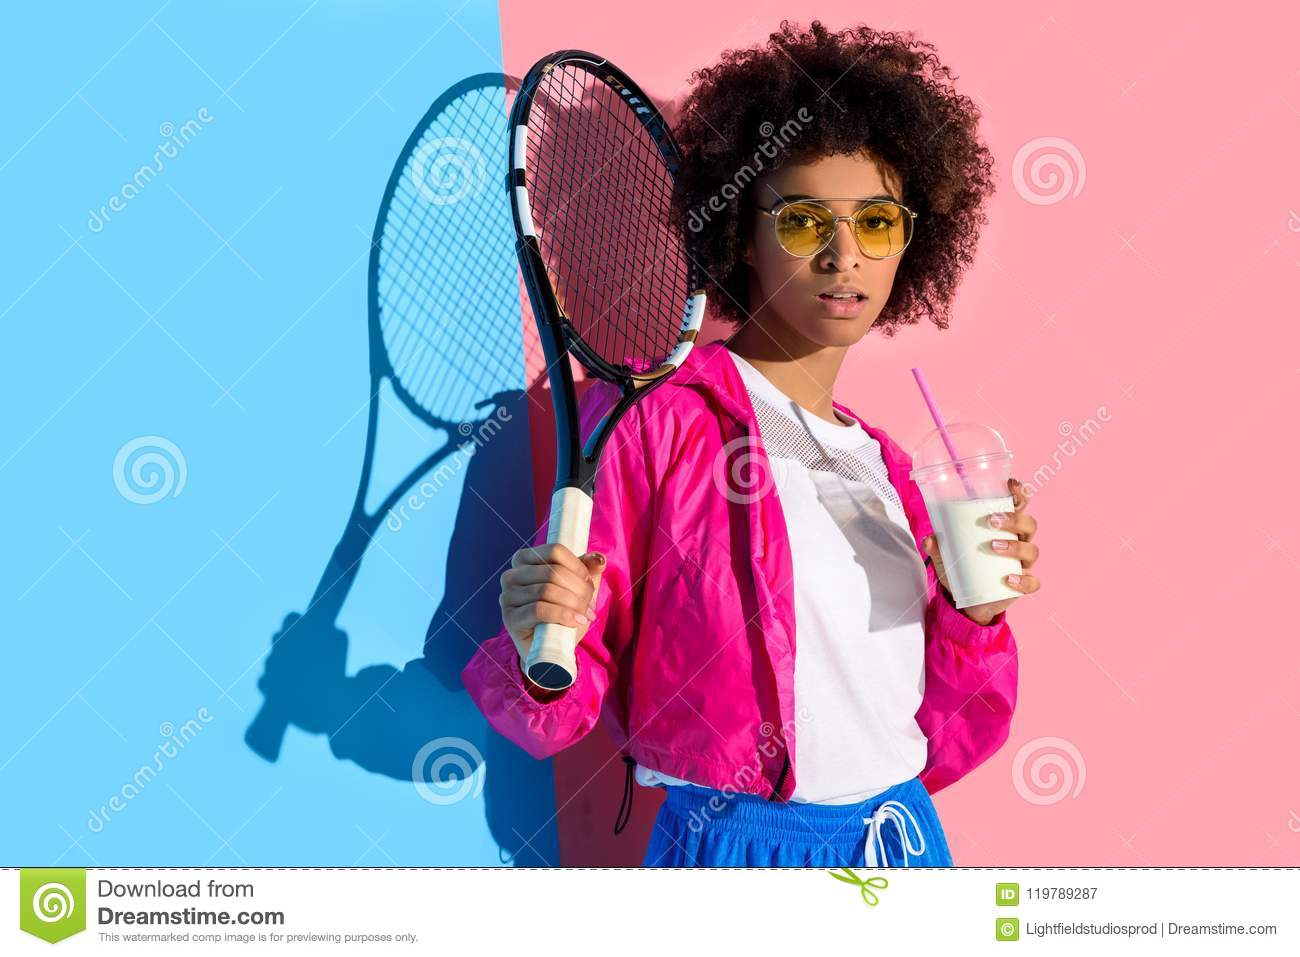 Young bright african american girl holding tennis racket and plastic cup with drink on pink and blue